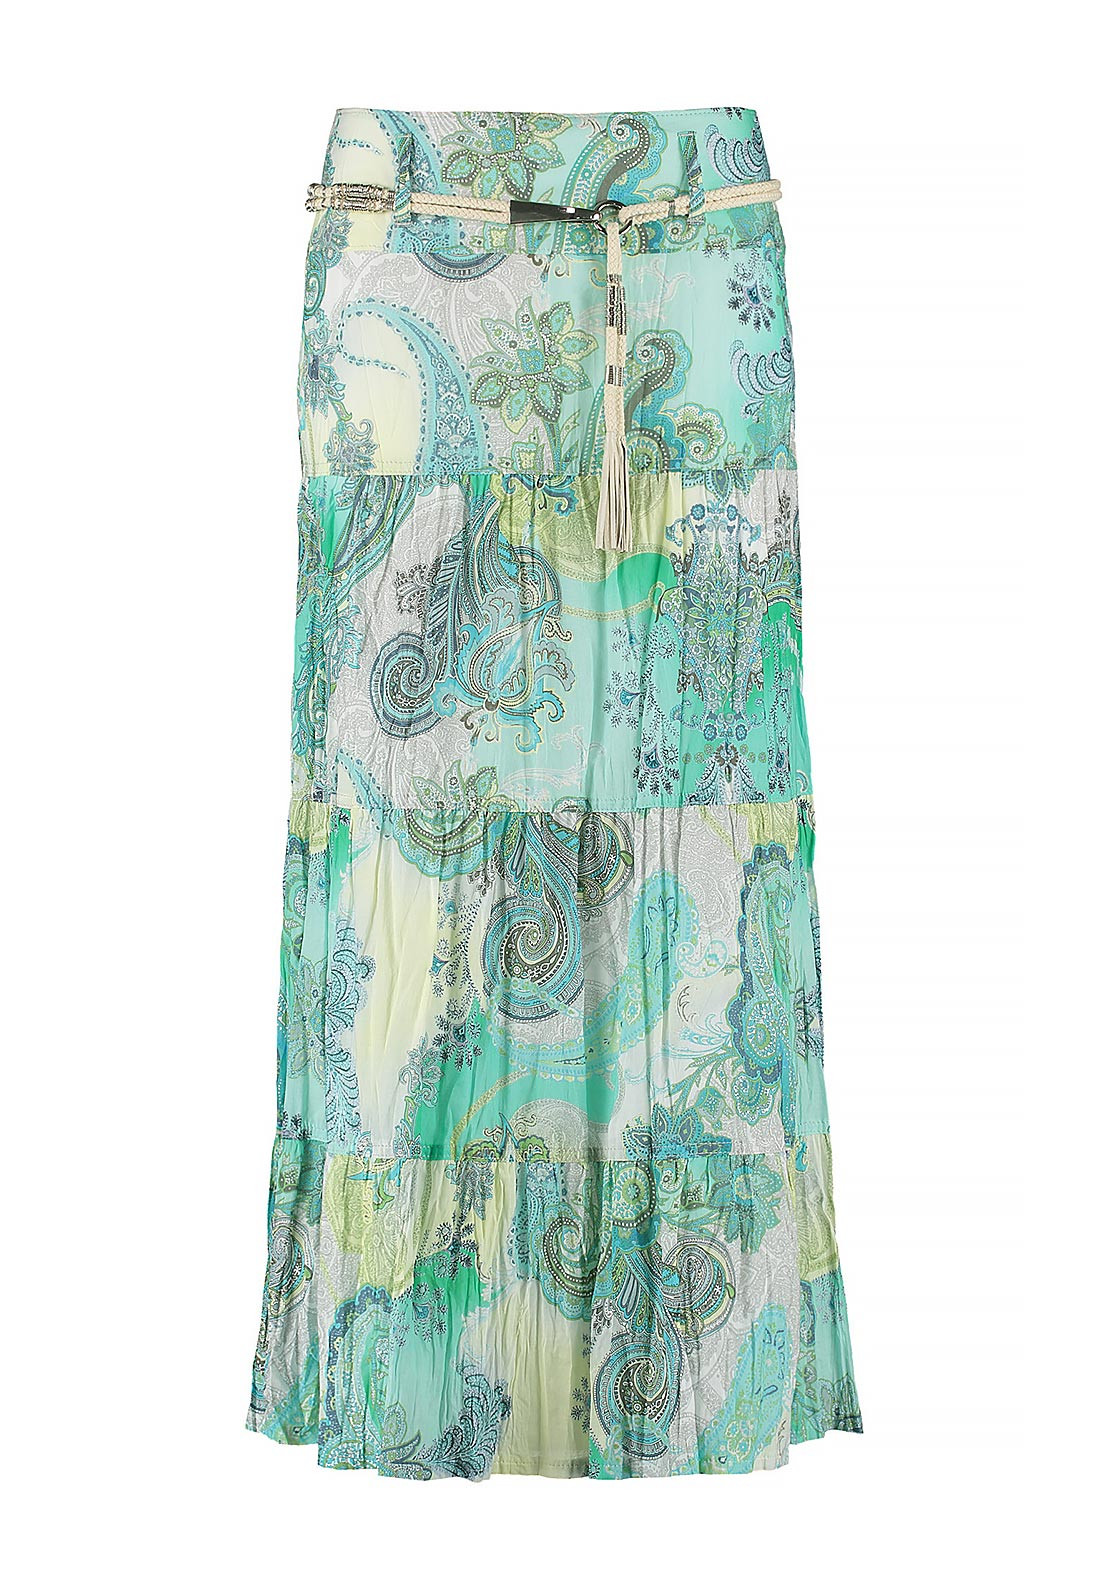 Gerry Weber Printed Pleated Long Skirt, Green